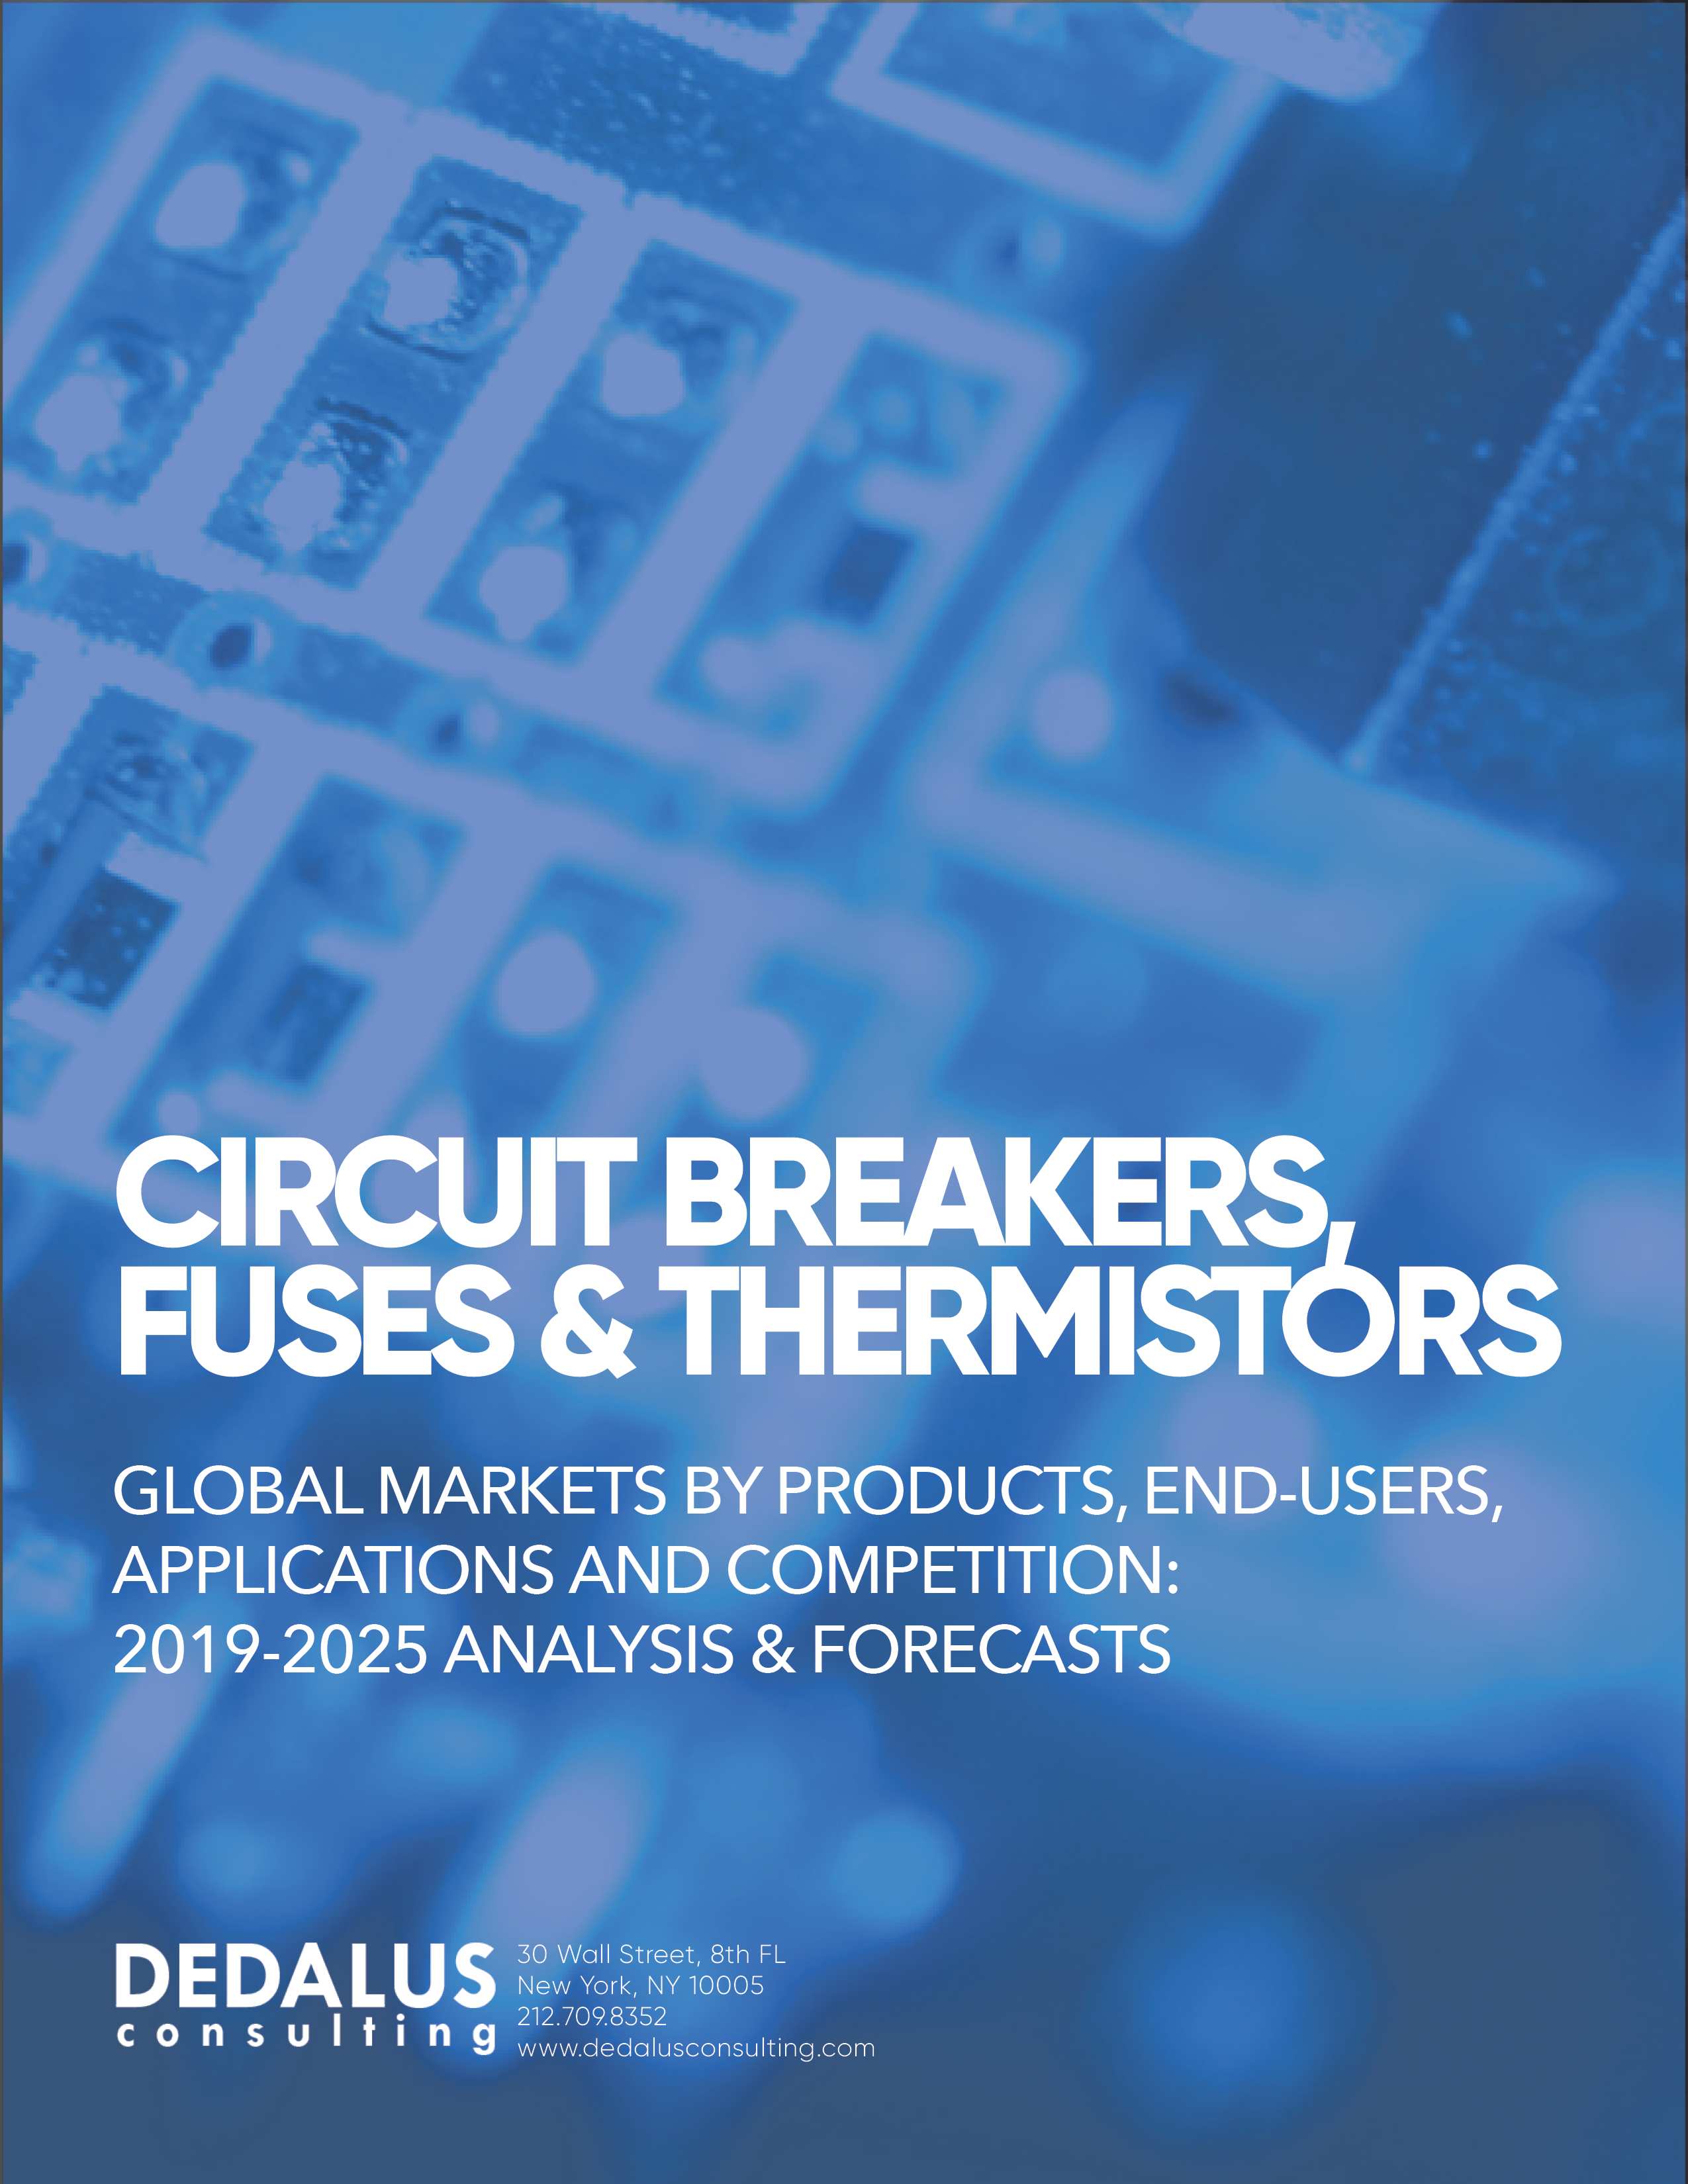 Circuit Breakers, Fuses and Thermistors